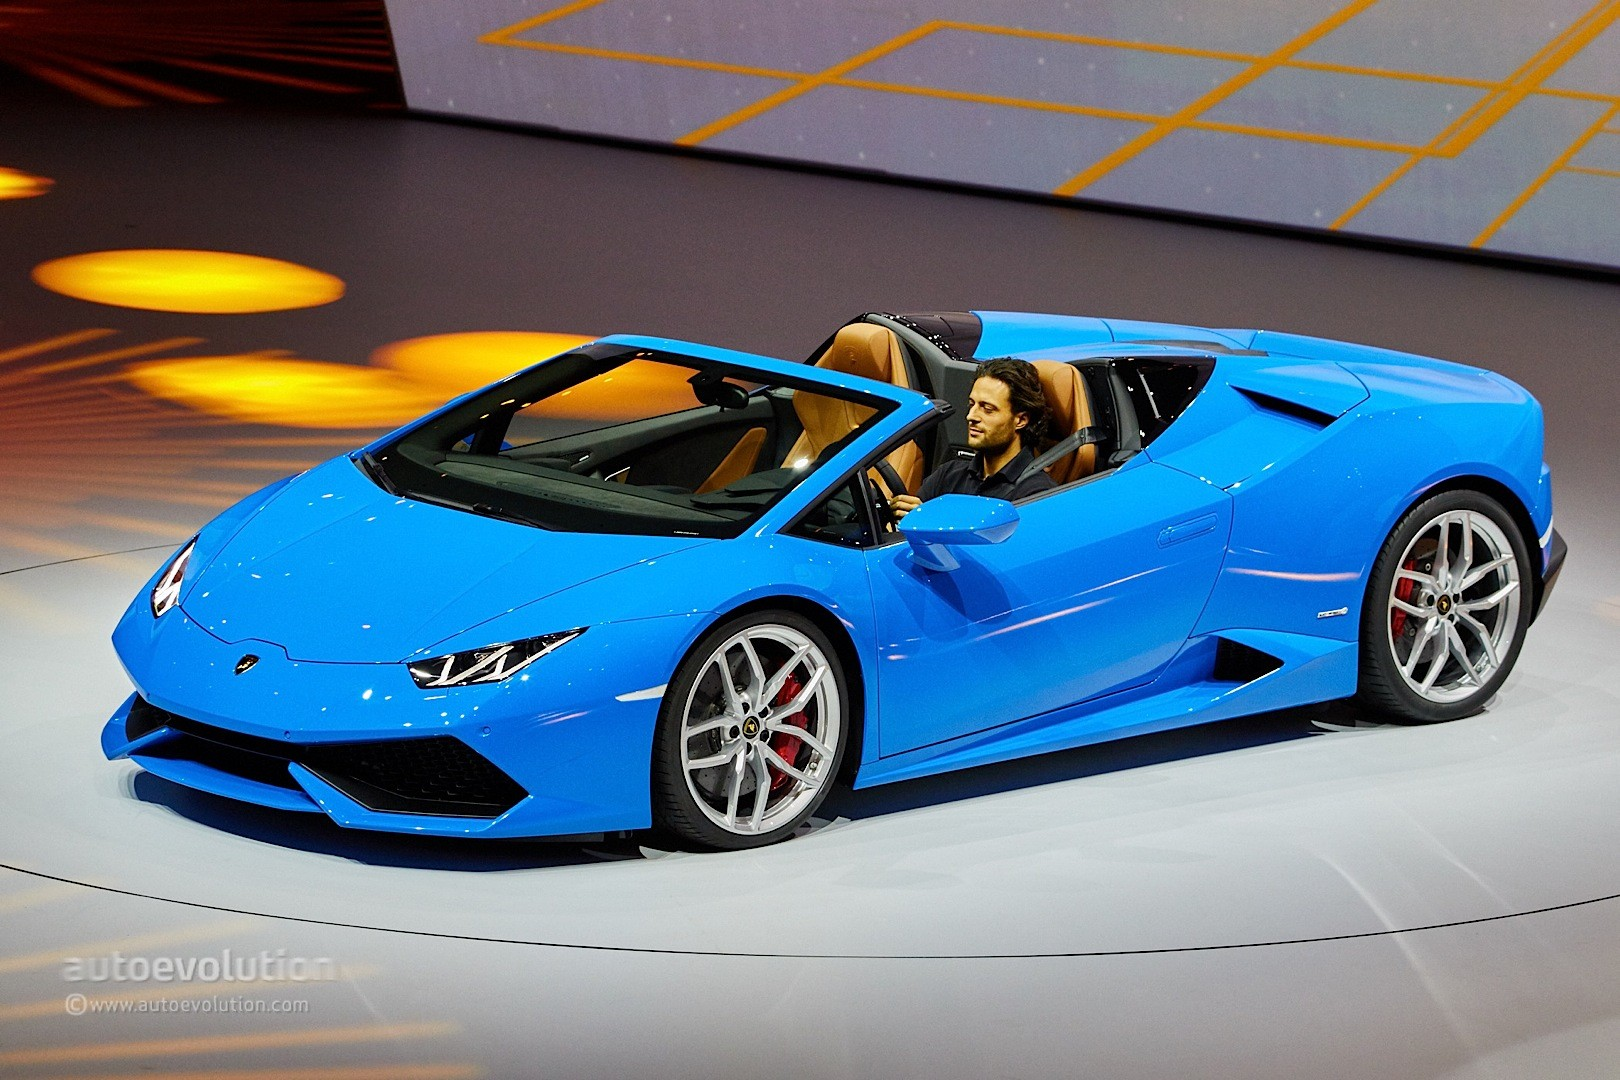 lamborghini huracan spyder looks like the ferrari 488 39 s arch enemy in fra. Black Bedroom Furniture Sets. Home Design Ideas